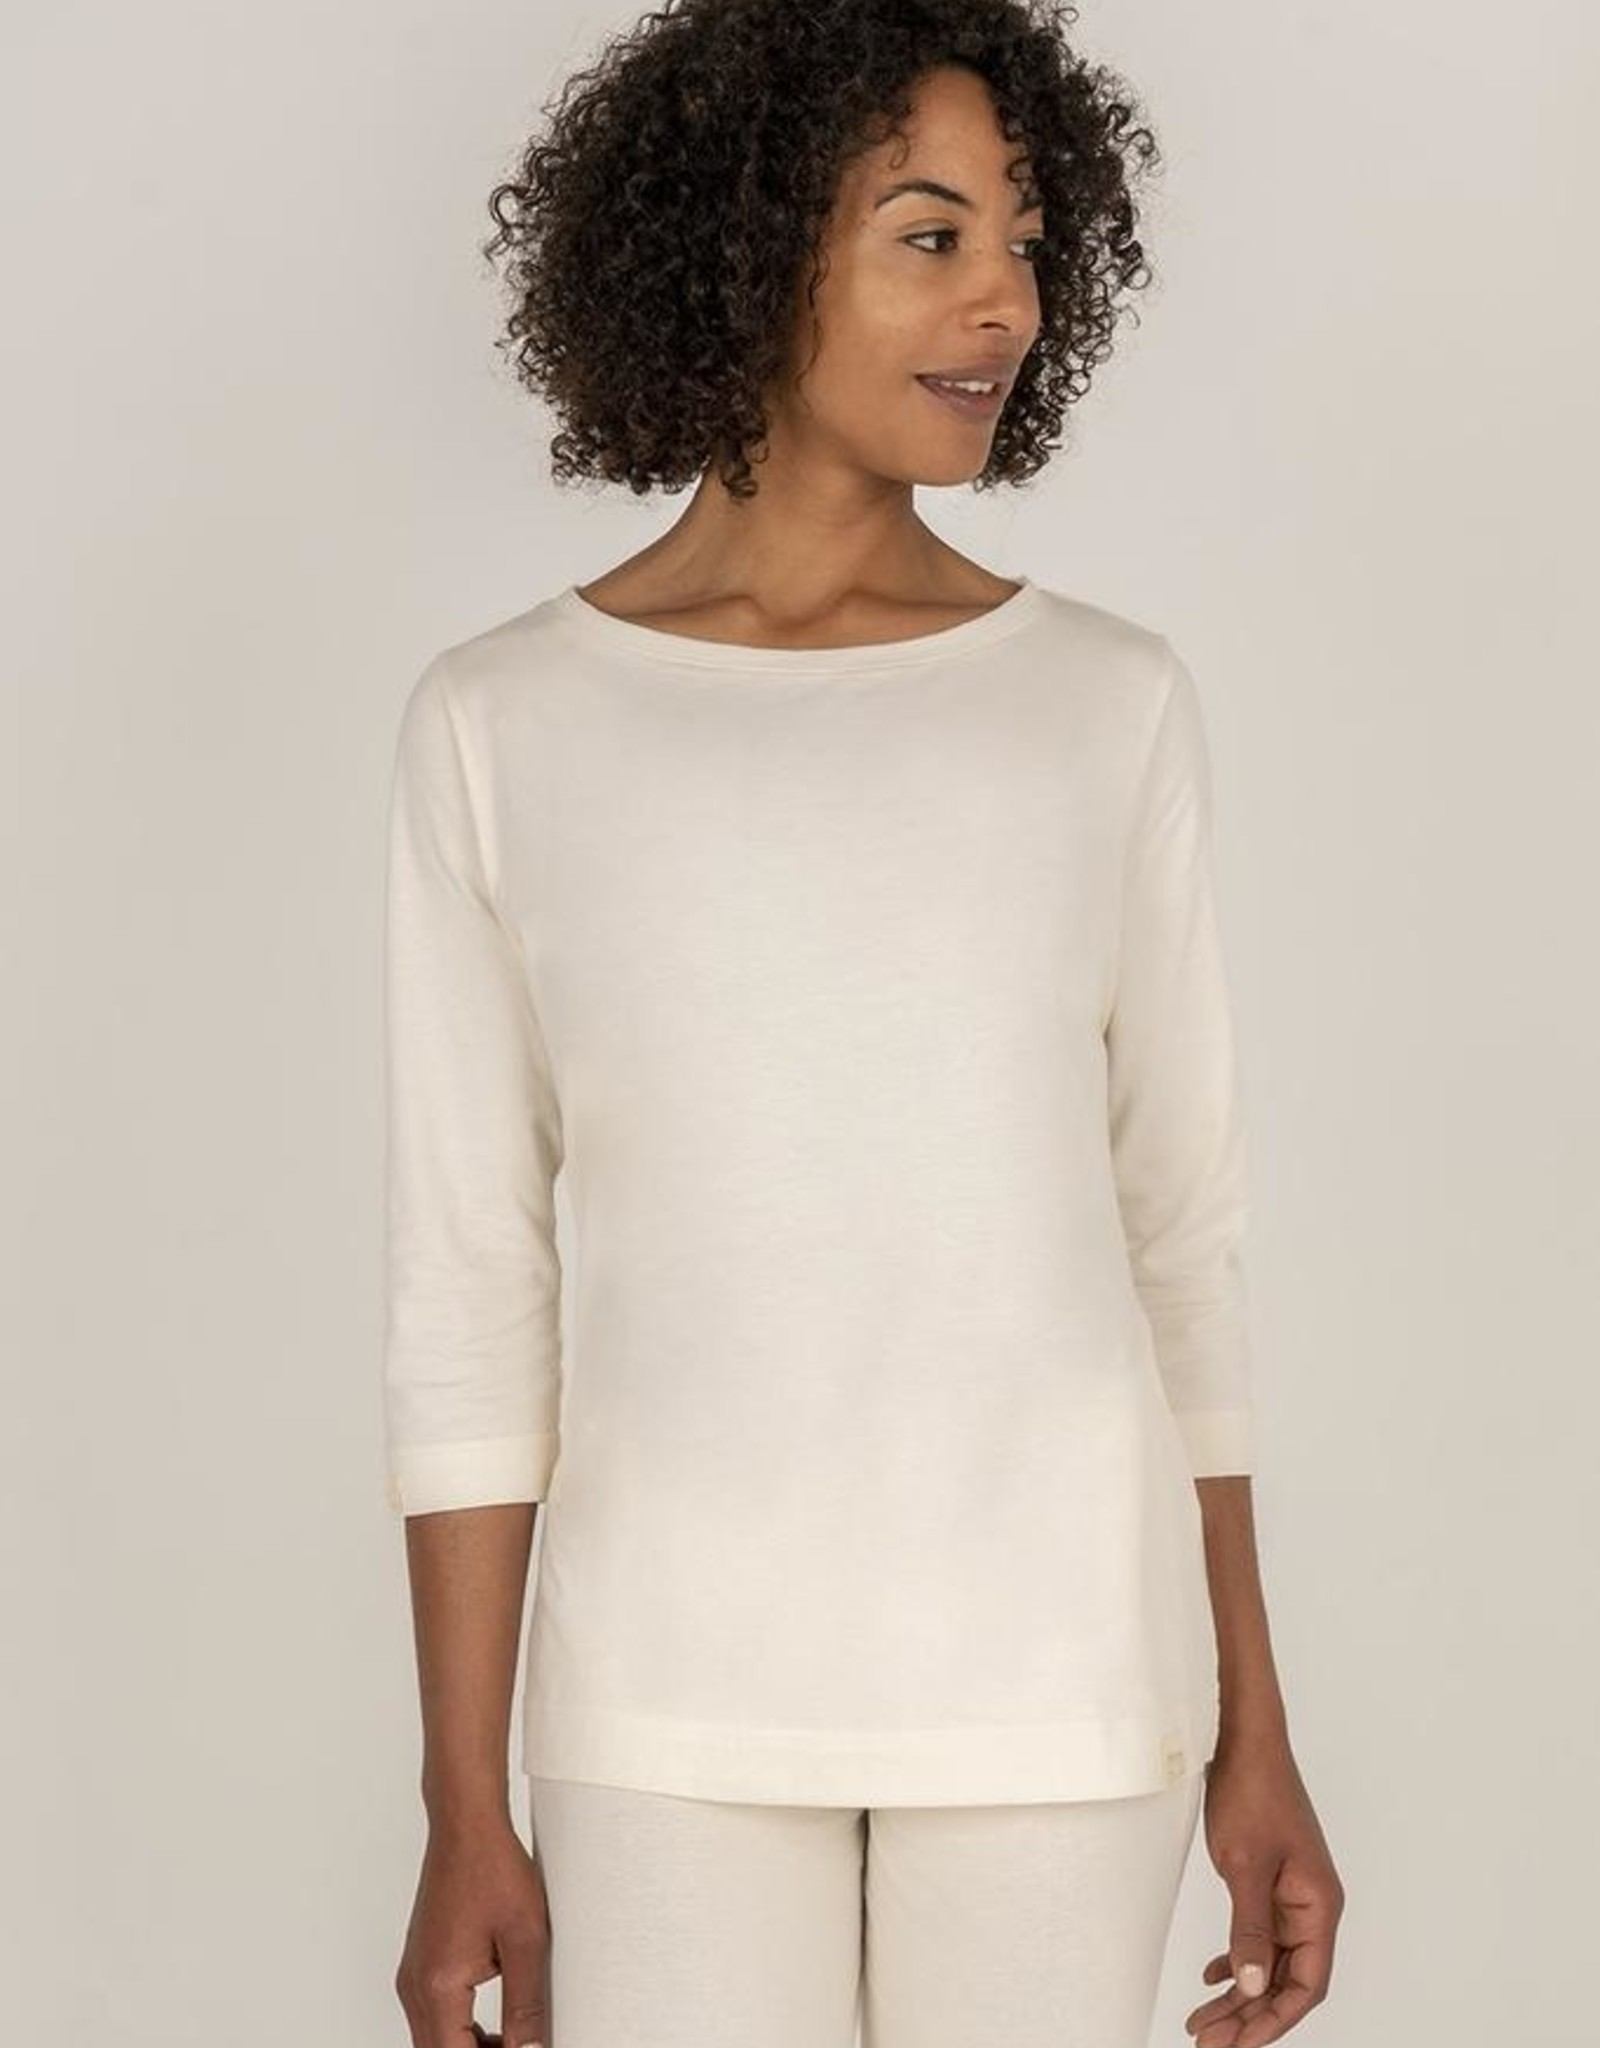 Capri sleeve shirt for women with boat neck